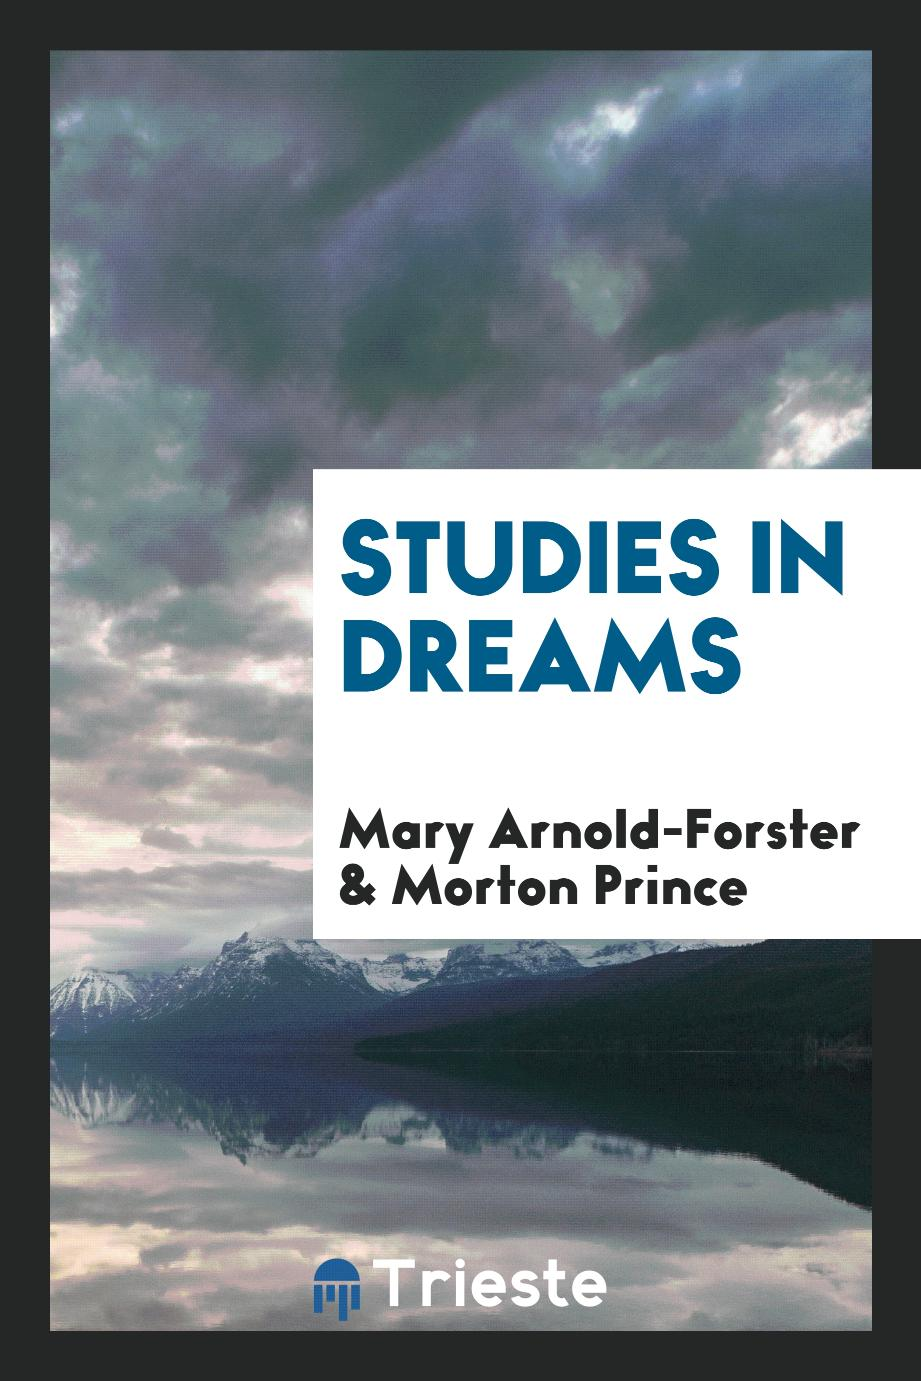 Mary Arnold-Forster, Morton Prince - Studies in dreams